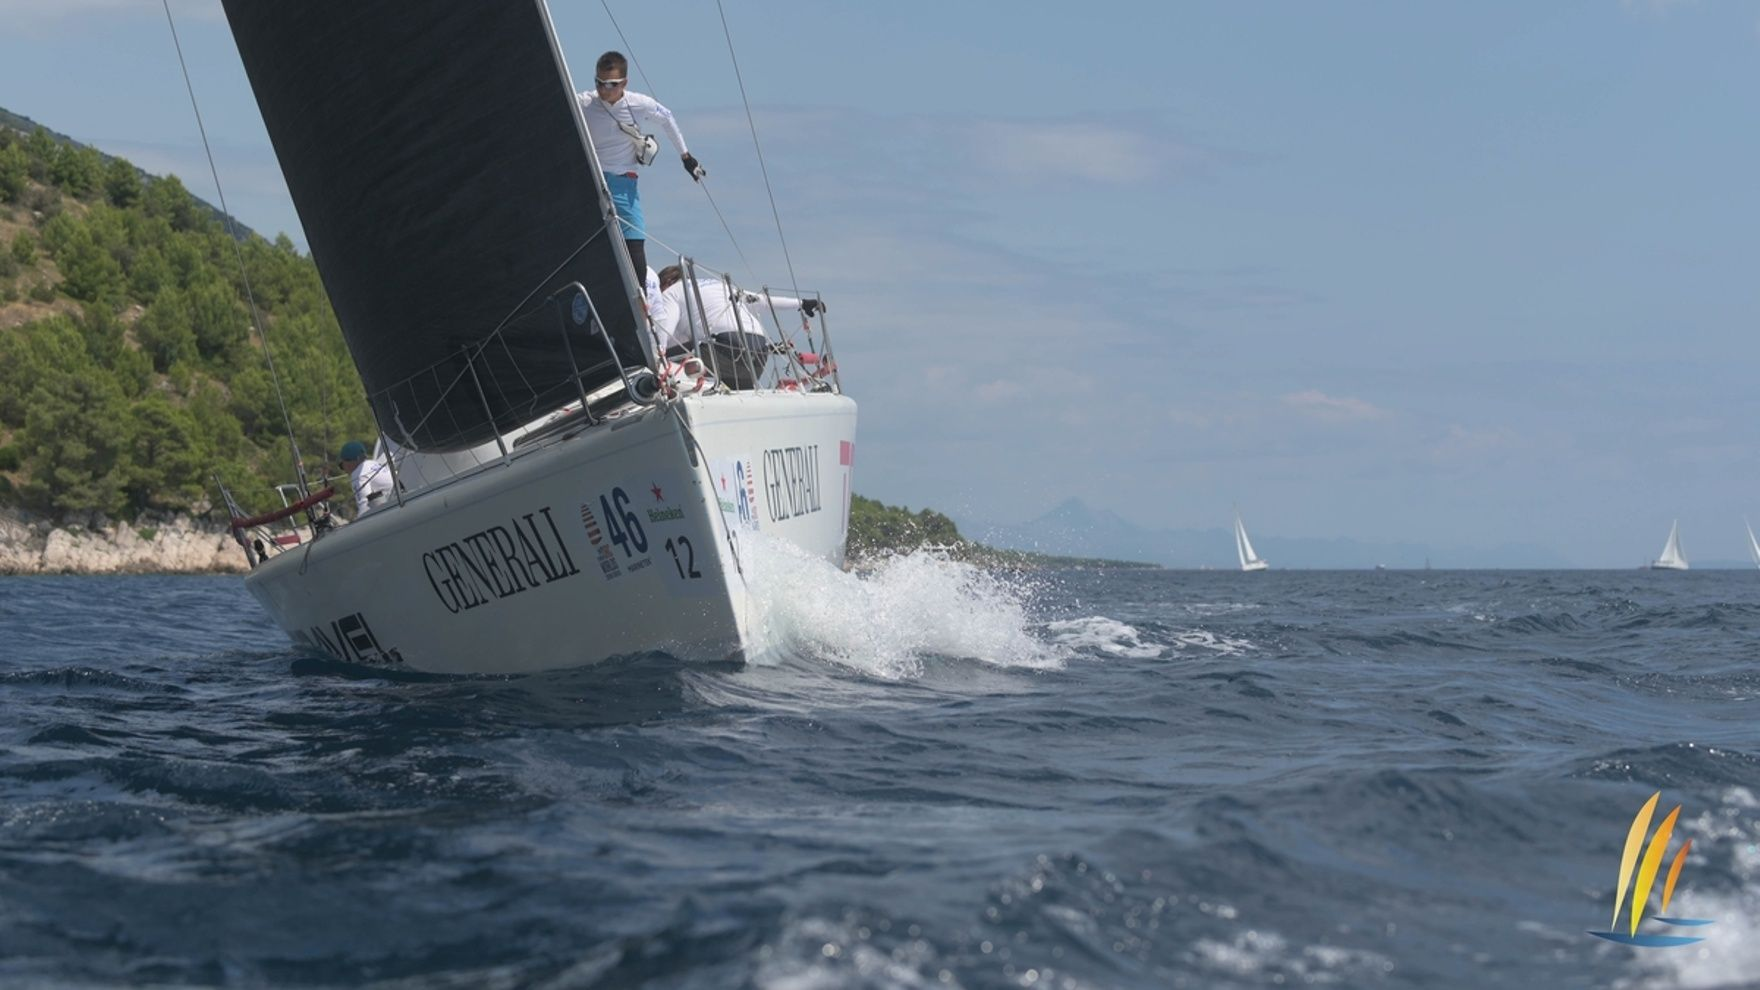 International Regatta Croatia 2021